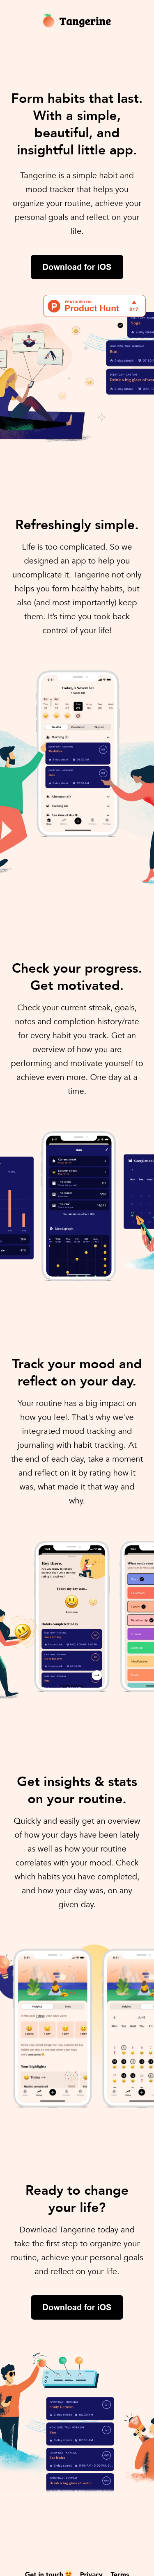 Example of Design for People & Society, Mobile Landing Page by tangerine.app | Mobile Landing Page Design